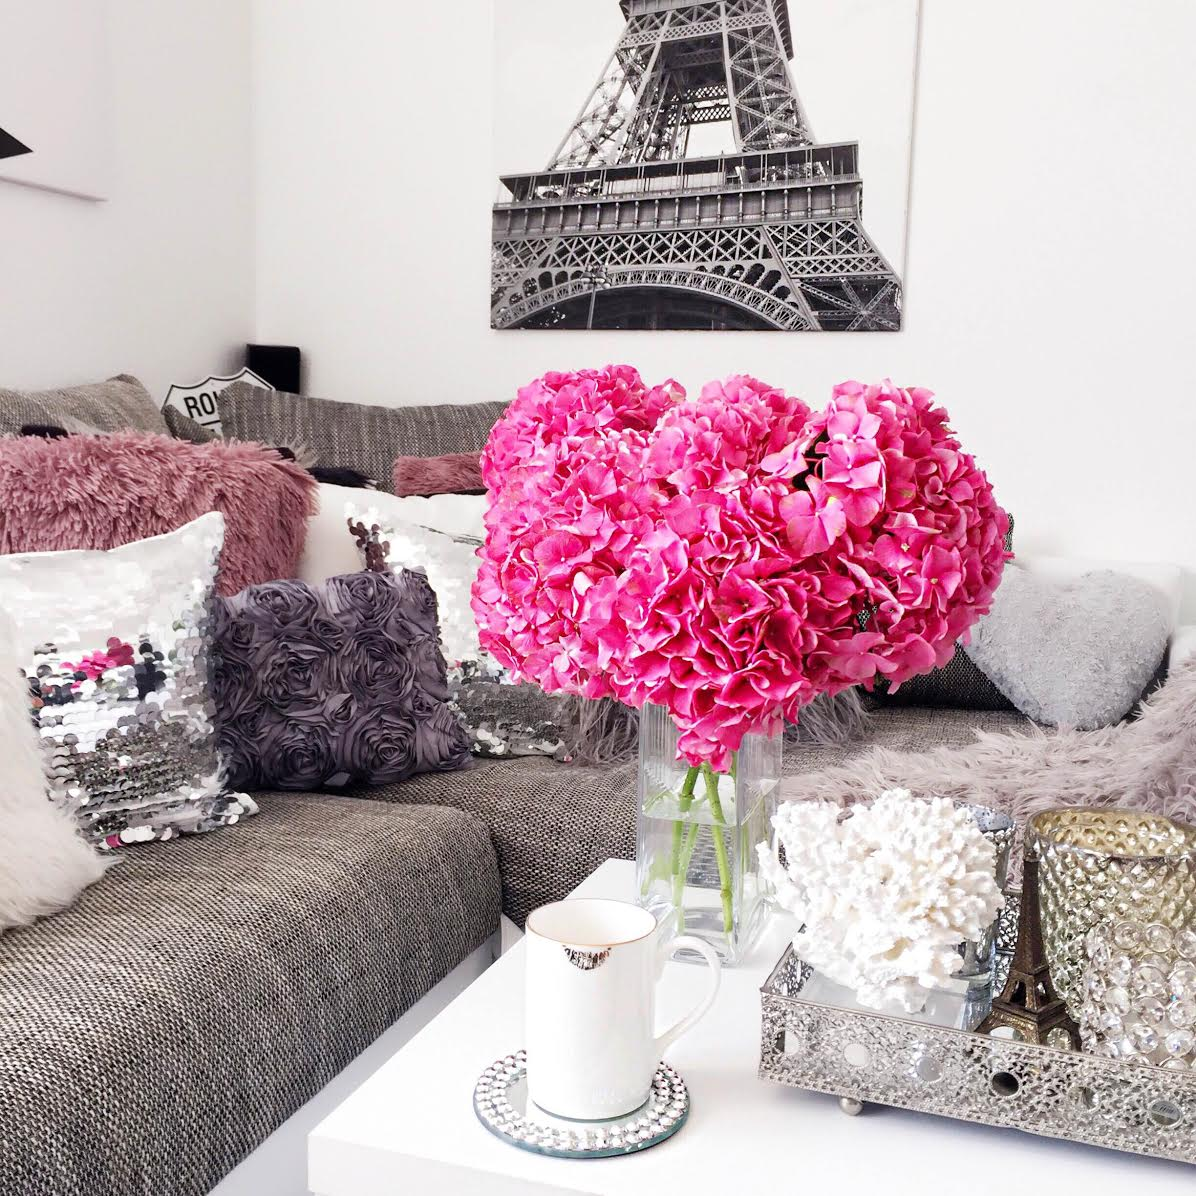 living-room-fashionhippieloves-wohnzimmer